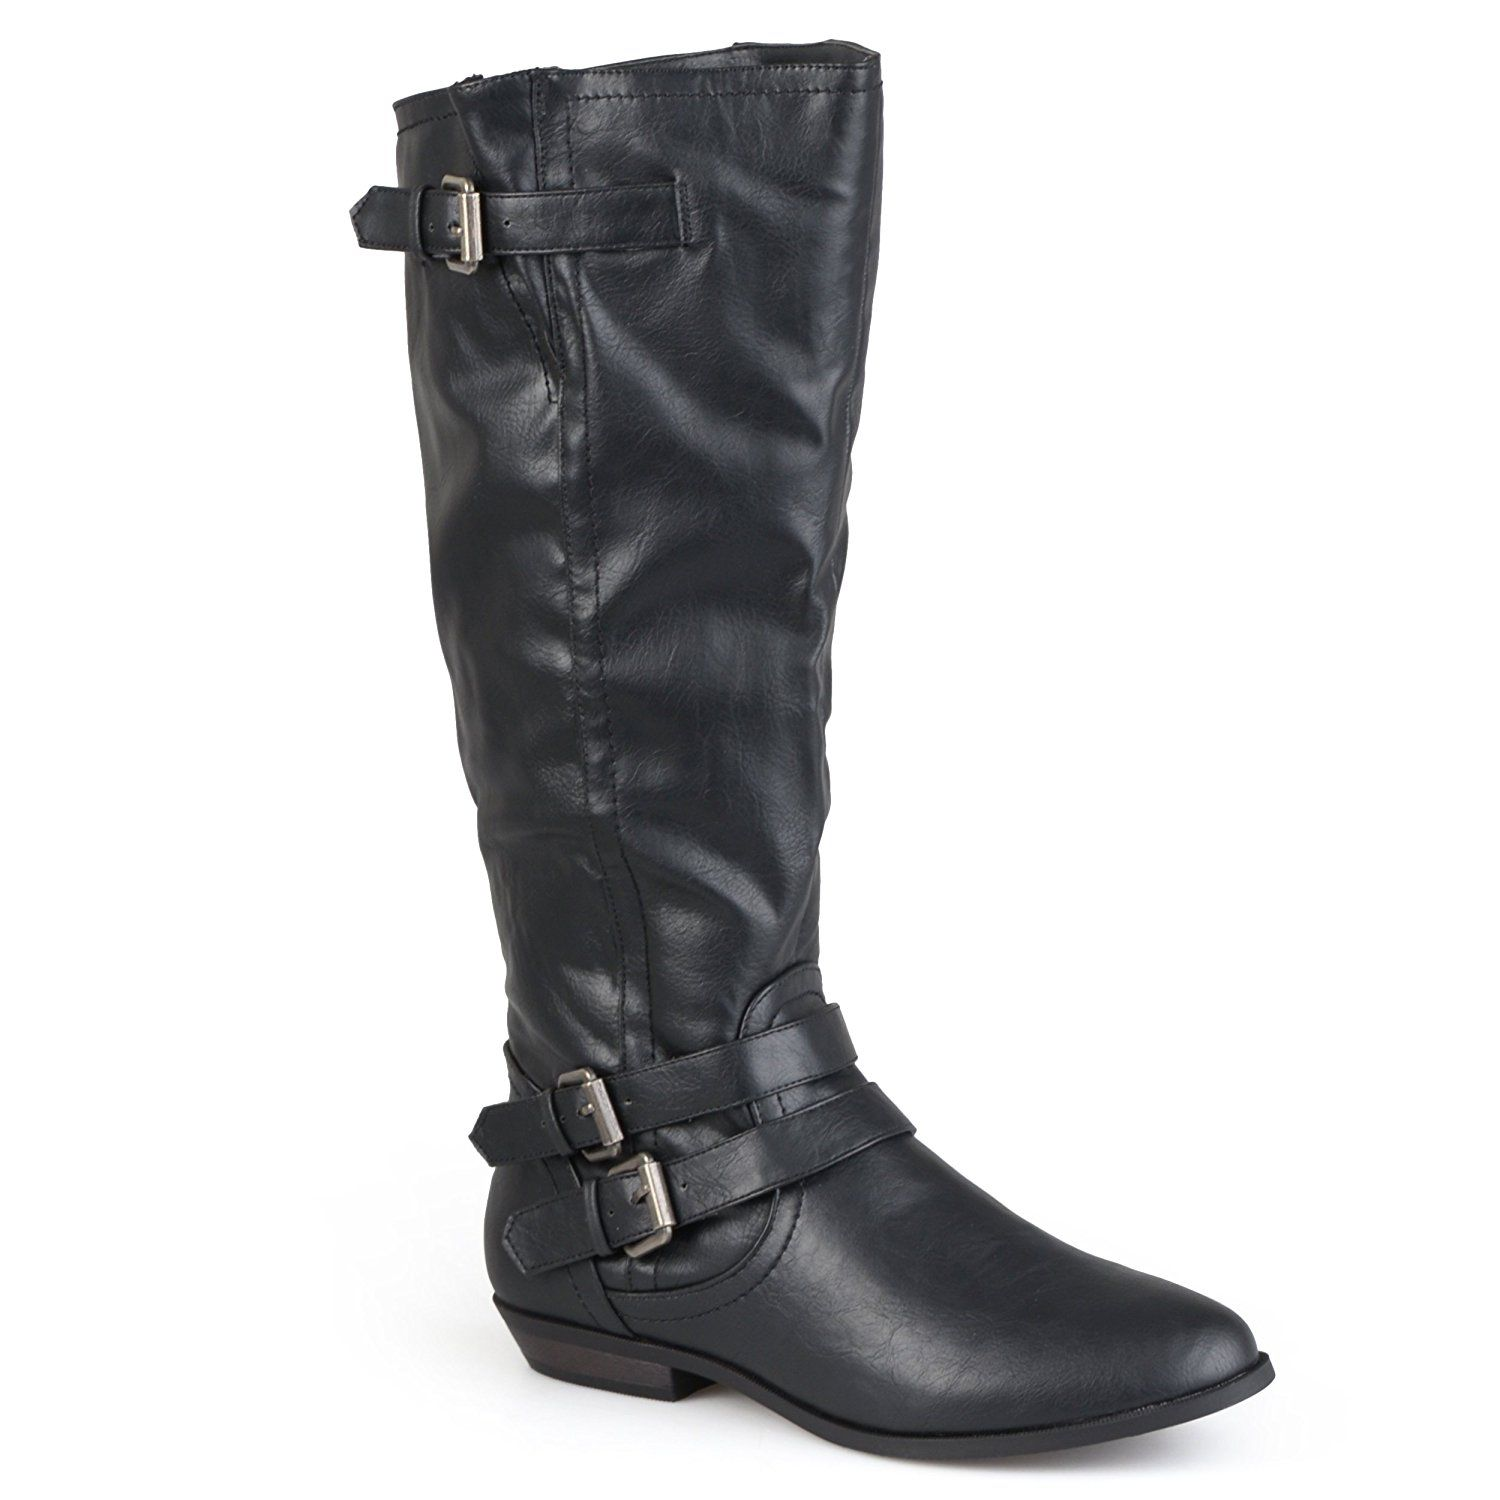 e93e0a49616 Madden Girl by Steve Madden Womens Buckle Detail Boots   This is an Amazon  Affiliate link